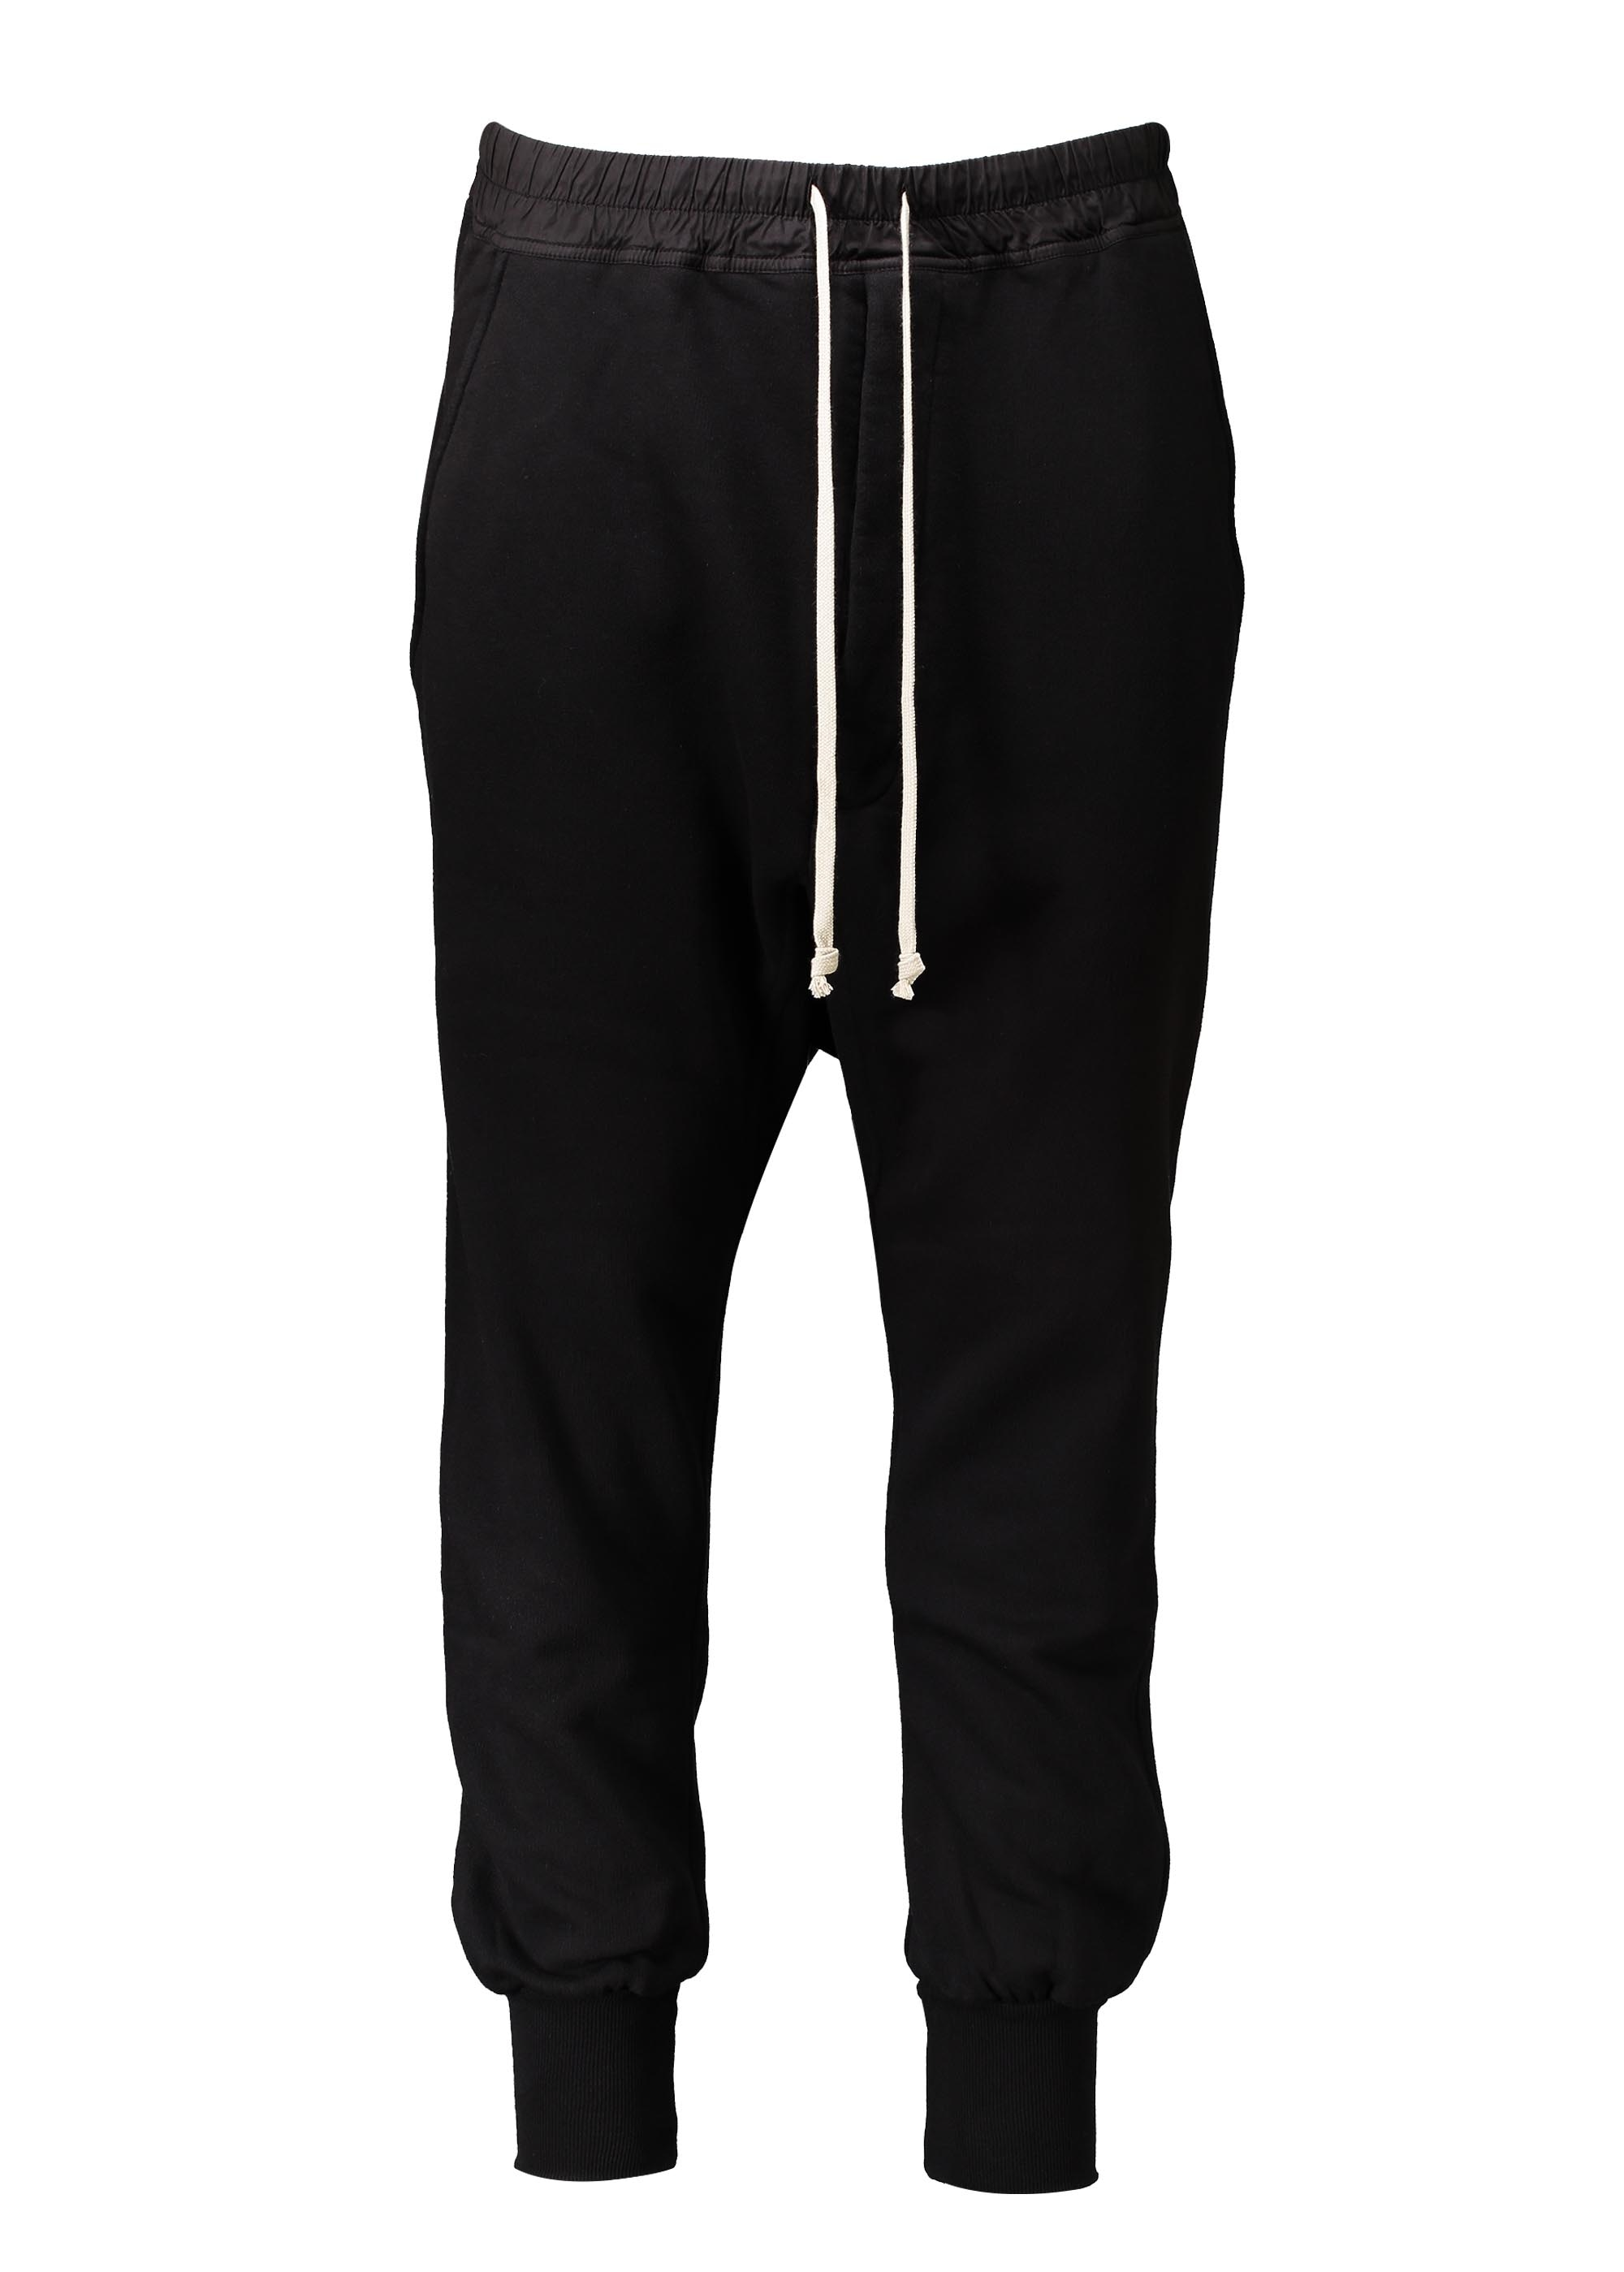 Rick Owens Drkshdw Woven Sweat Pants - Black - Triads Mens from ... ee3216364cba3